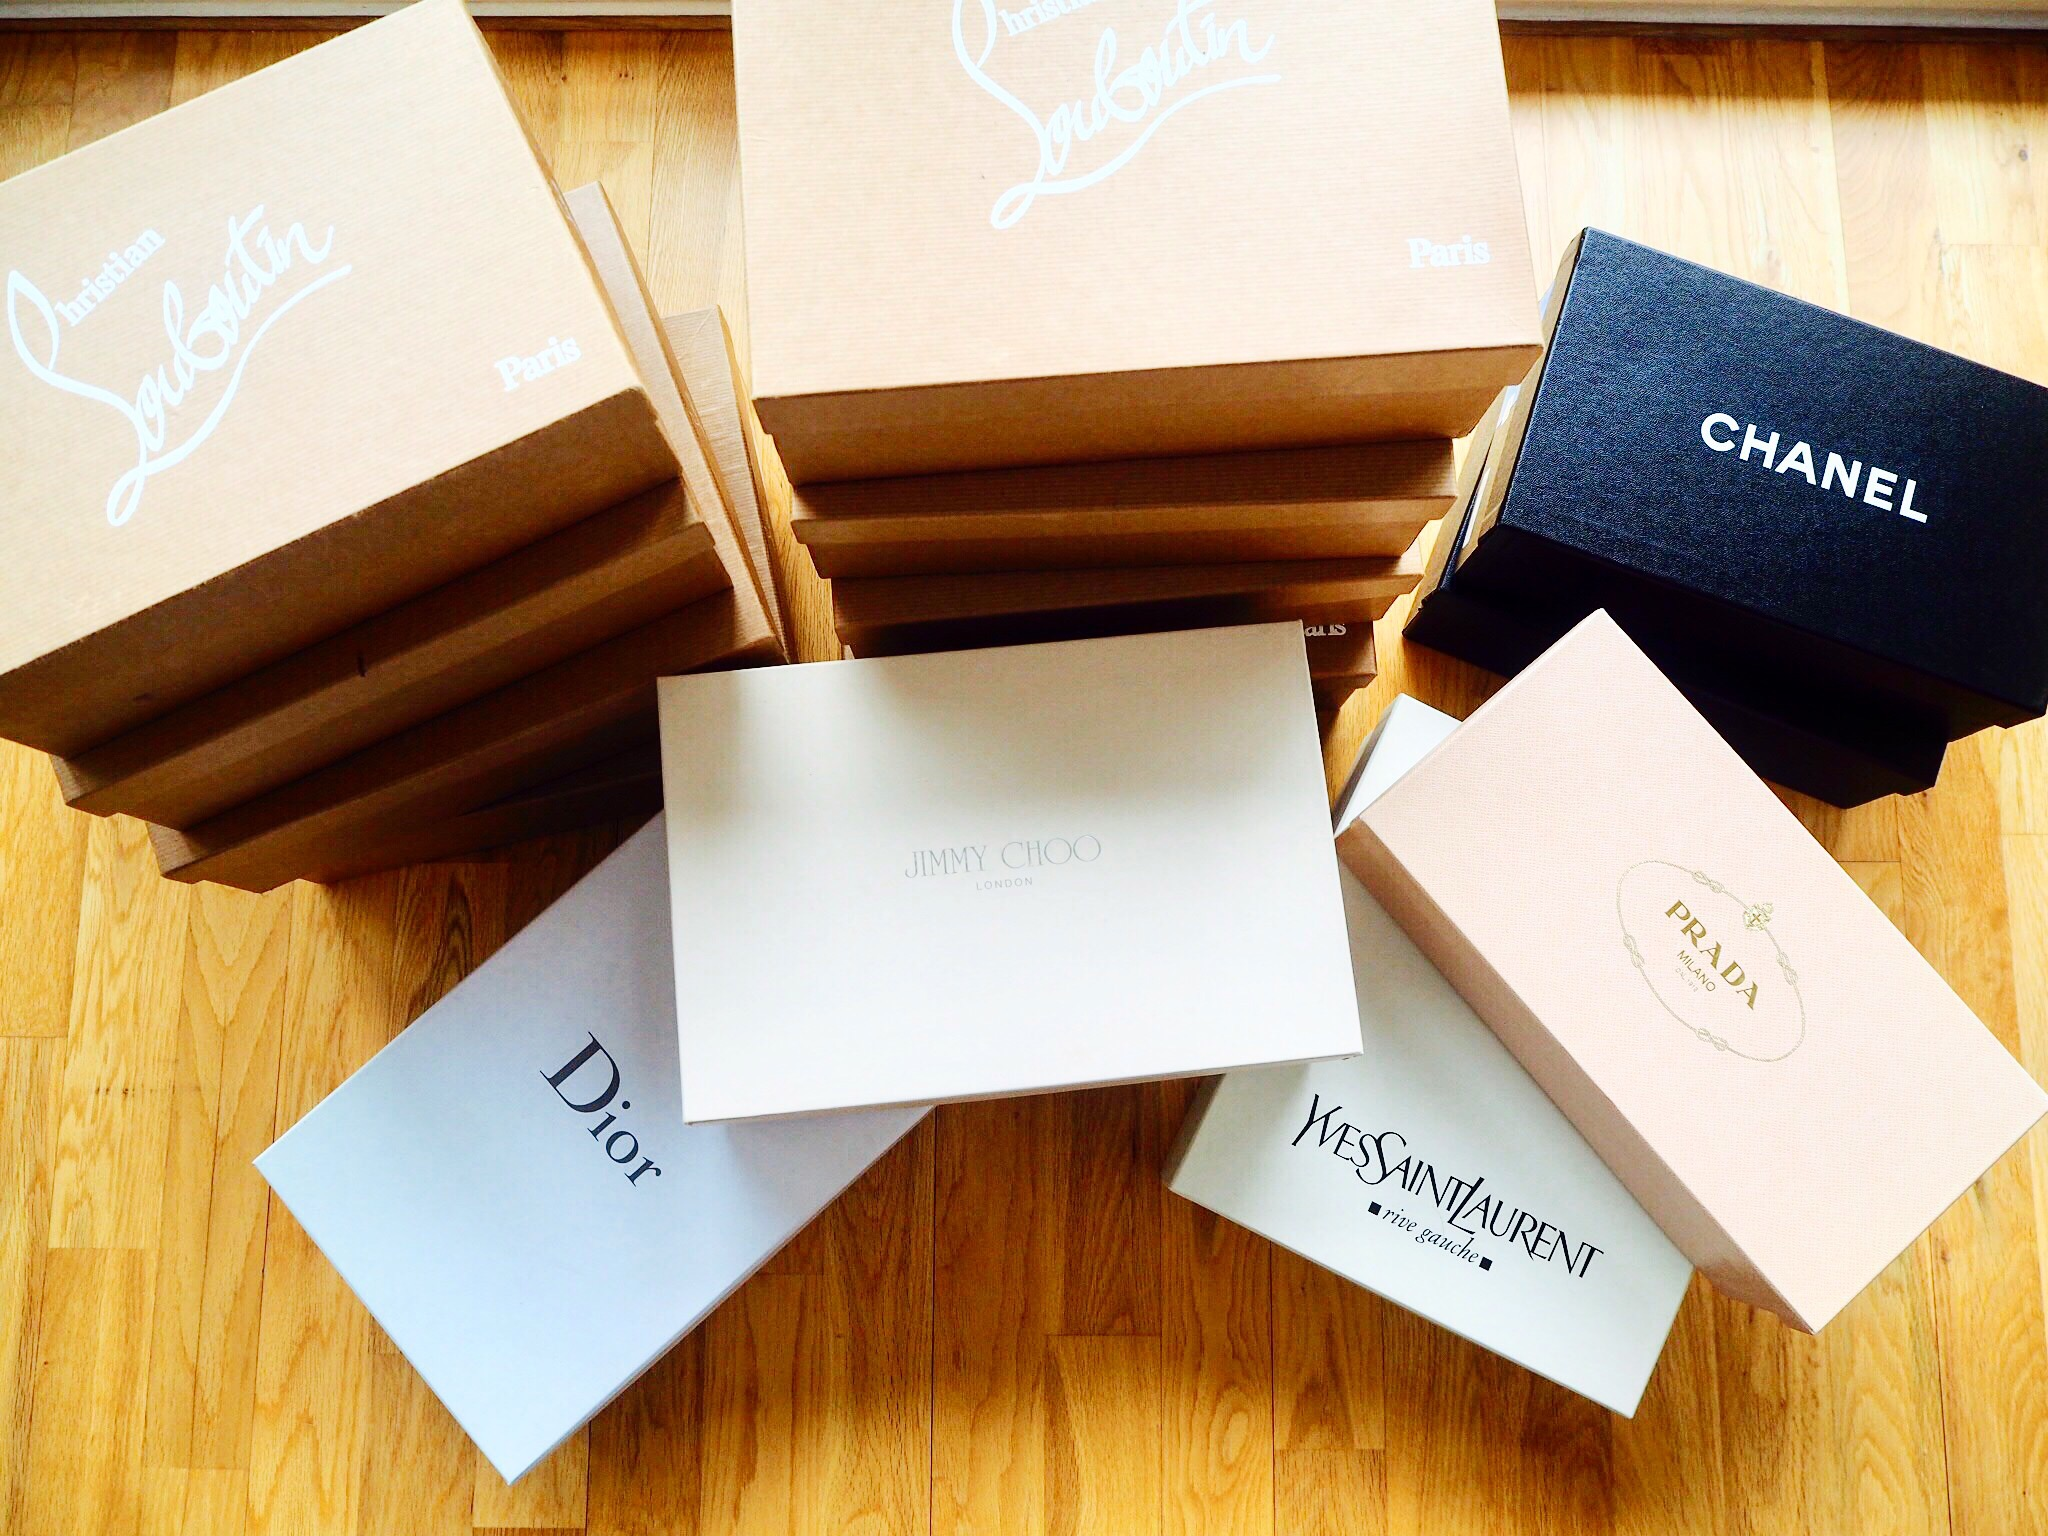 Designer shoe collection, Christian Louboutin, Chanel, Jimmy Choo, Prada, Dior, YSL